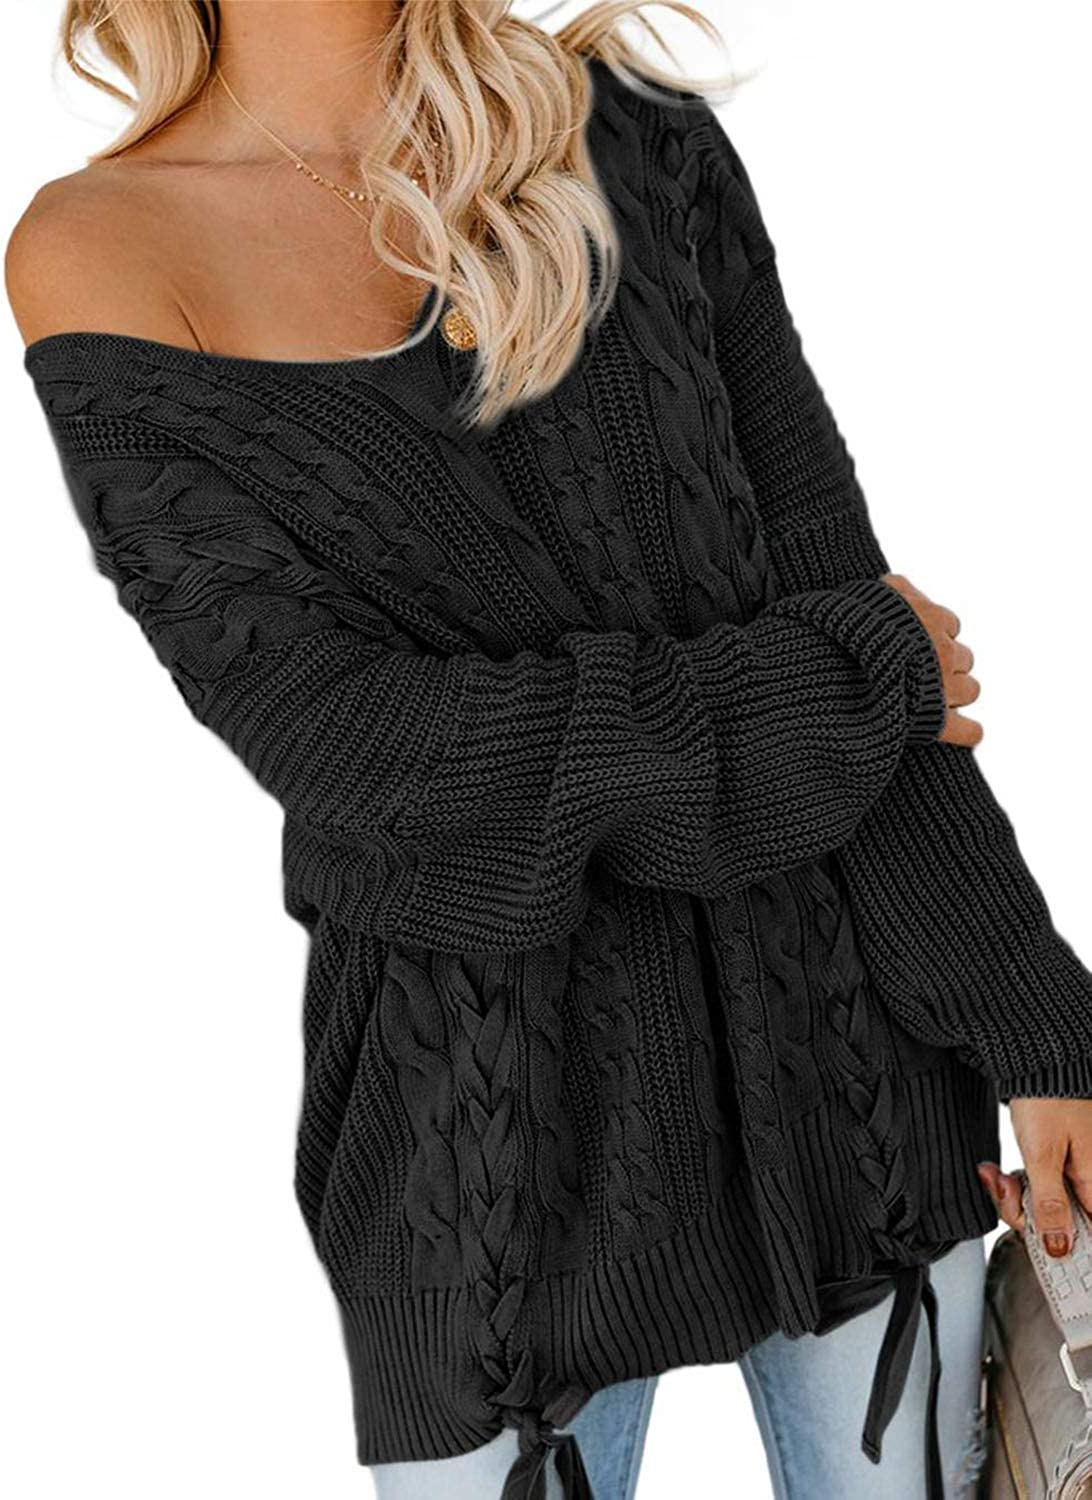 Zecilbo Women's Off Shoulder V Neck Colorado Springs Mall Sweater Lo Casual Cable Knit Max 50% OFF